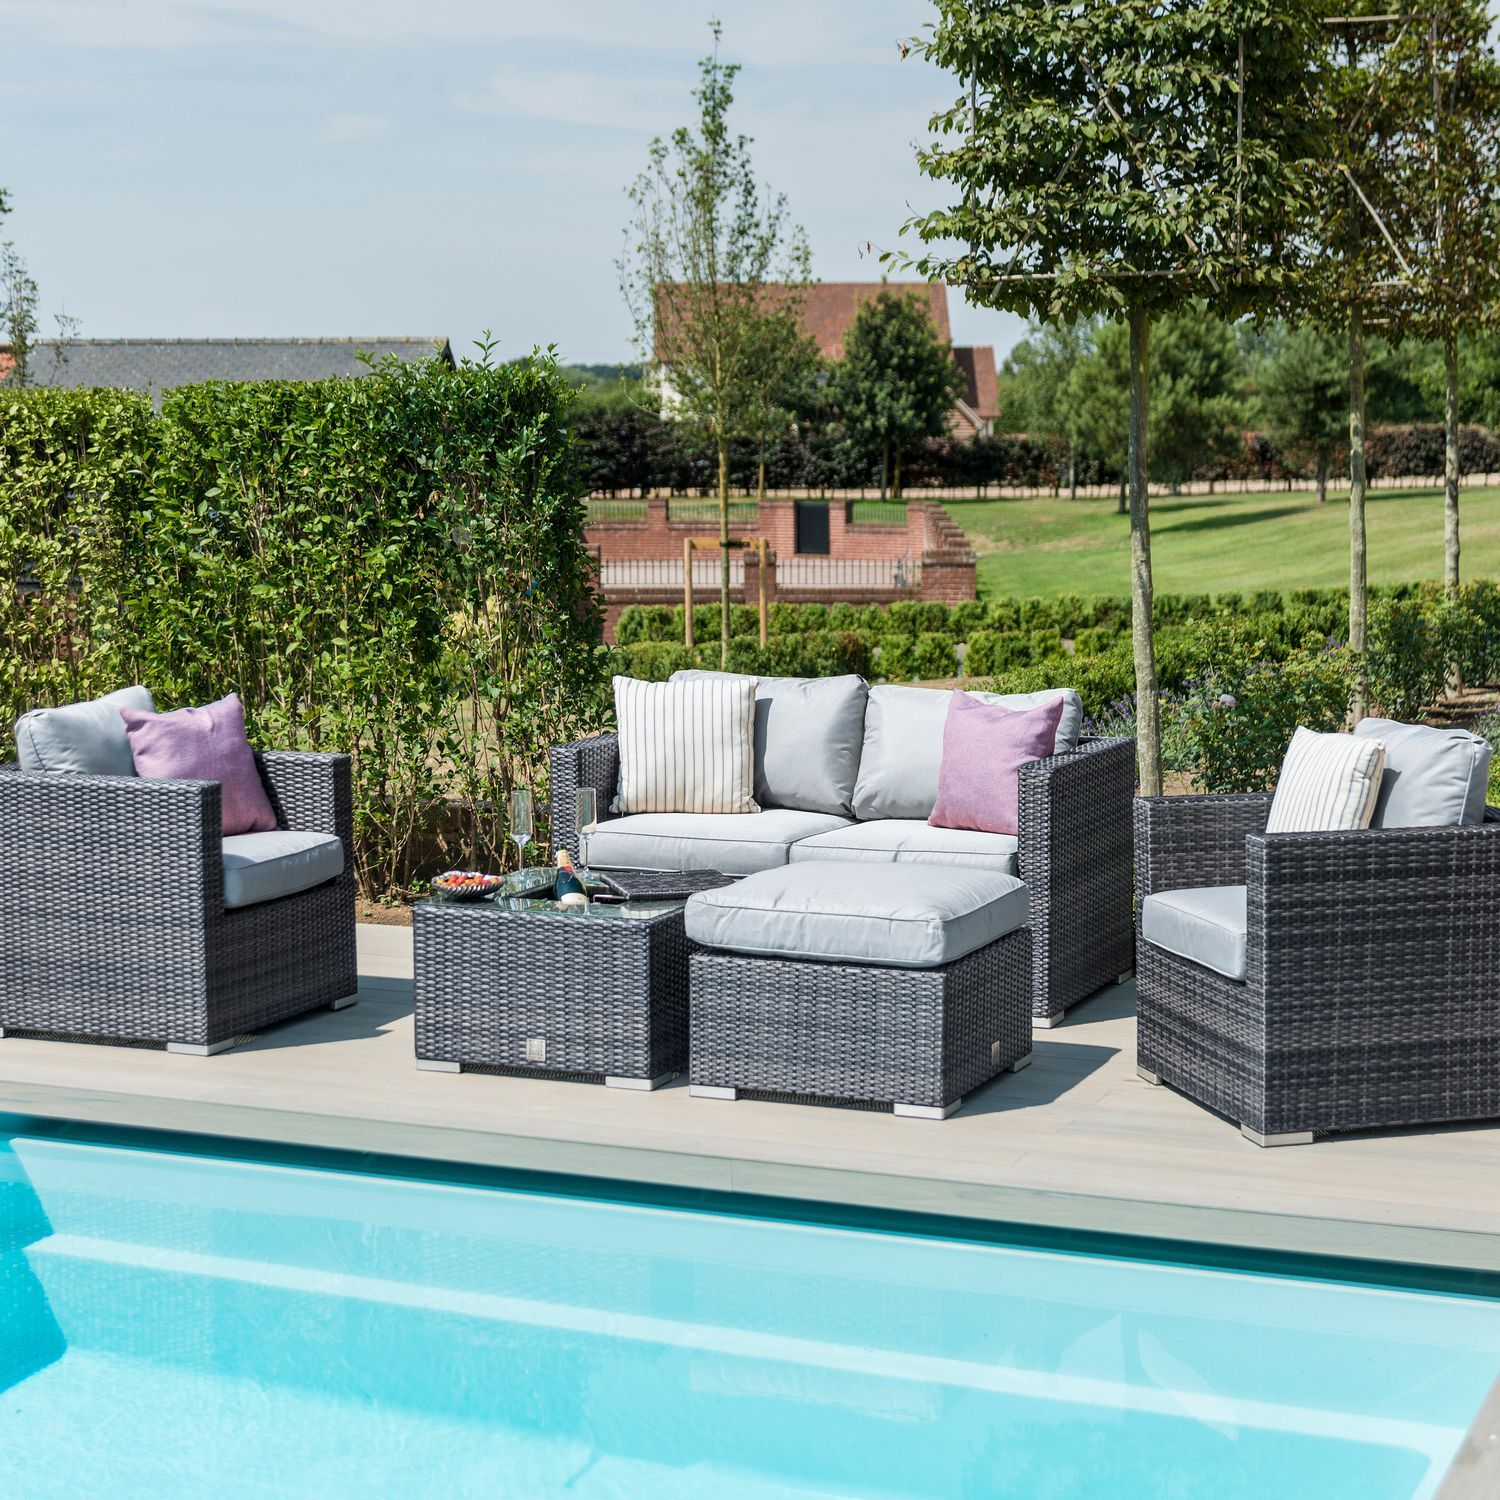 Maze Rattan Garden Furniture Grey Georgia 2 Seat Sofa Set With Ice Bucket In 2020 Sofa Set Rattan Garden Furniture Rattan Corner Sofa